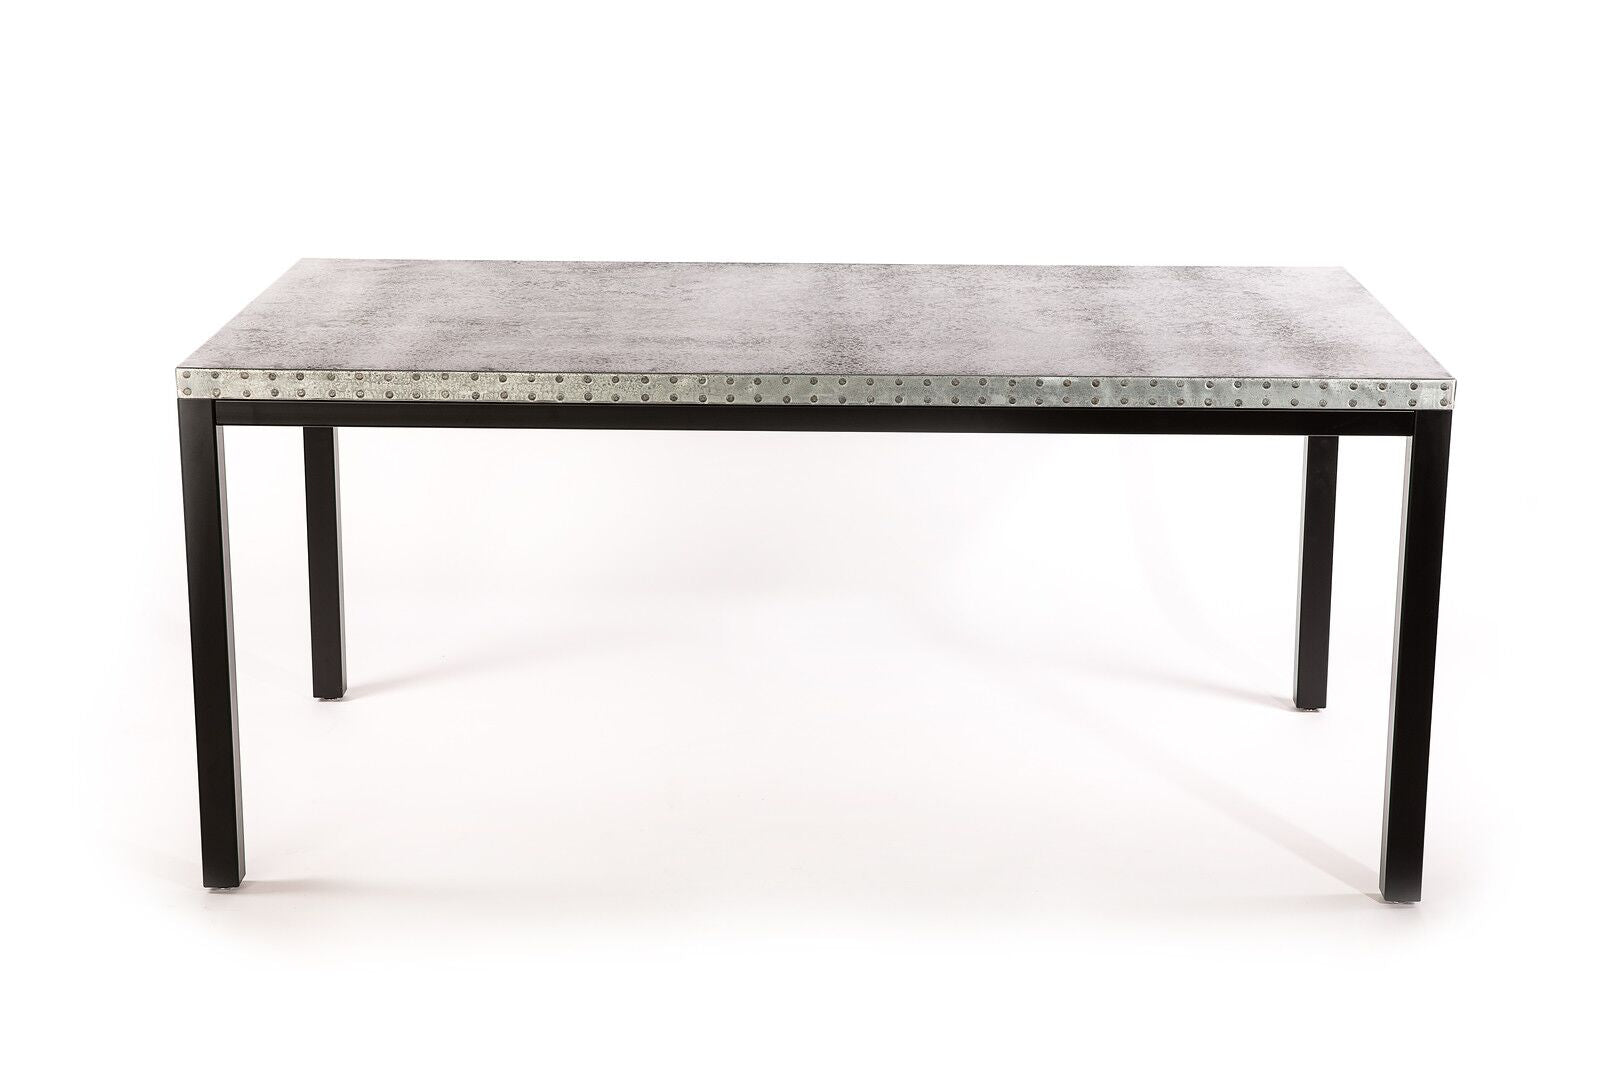 "Zinc Rectangular Table | Brooklyn Table | BLACKENED BRONZE | Black | CUSTOM SIZE L 72 W 37 H 30 | 1.5"" Standard 